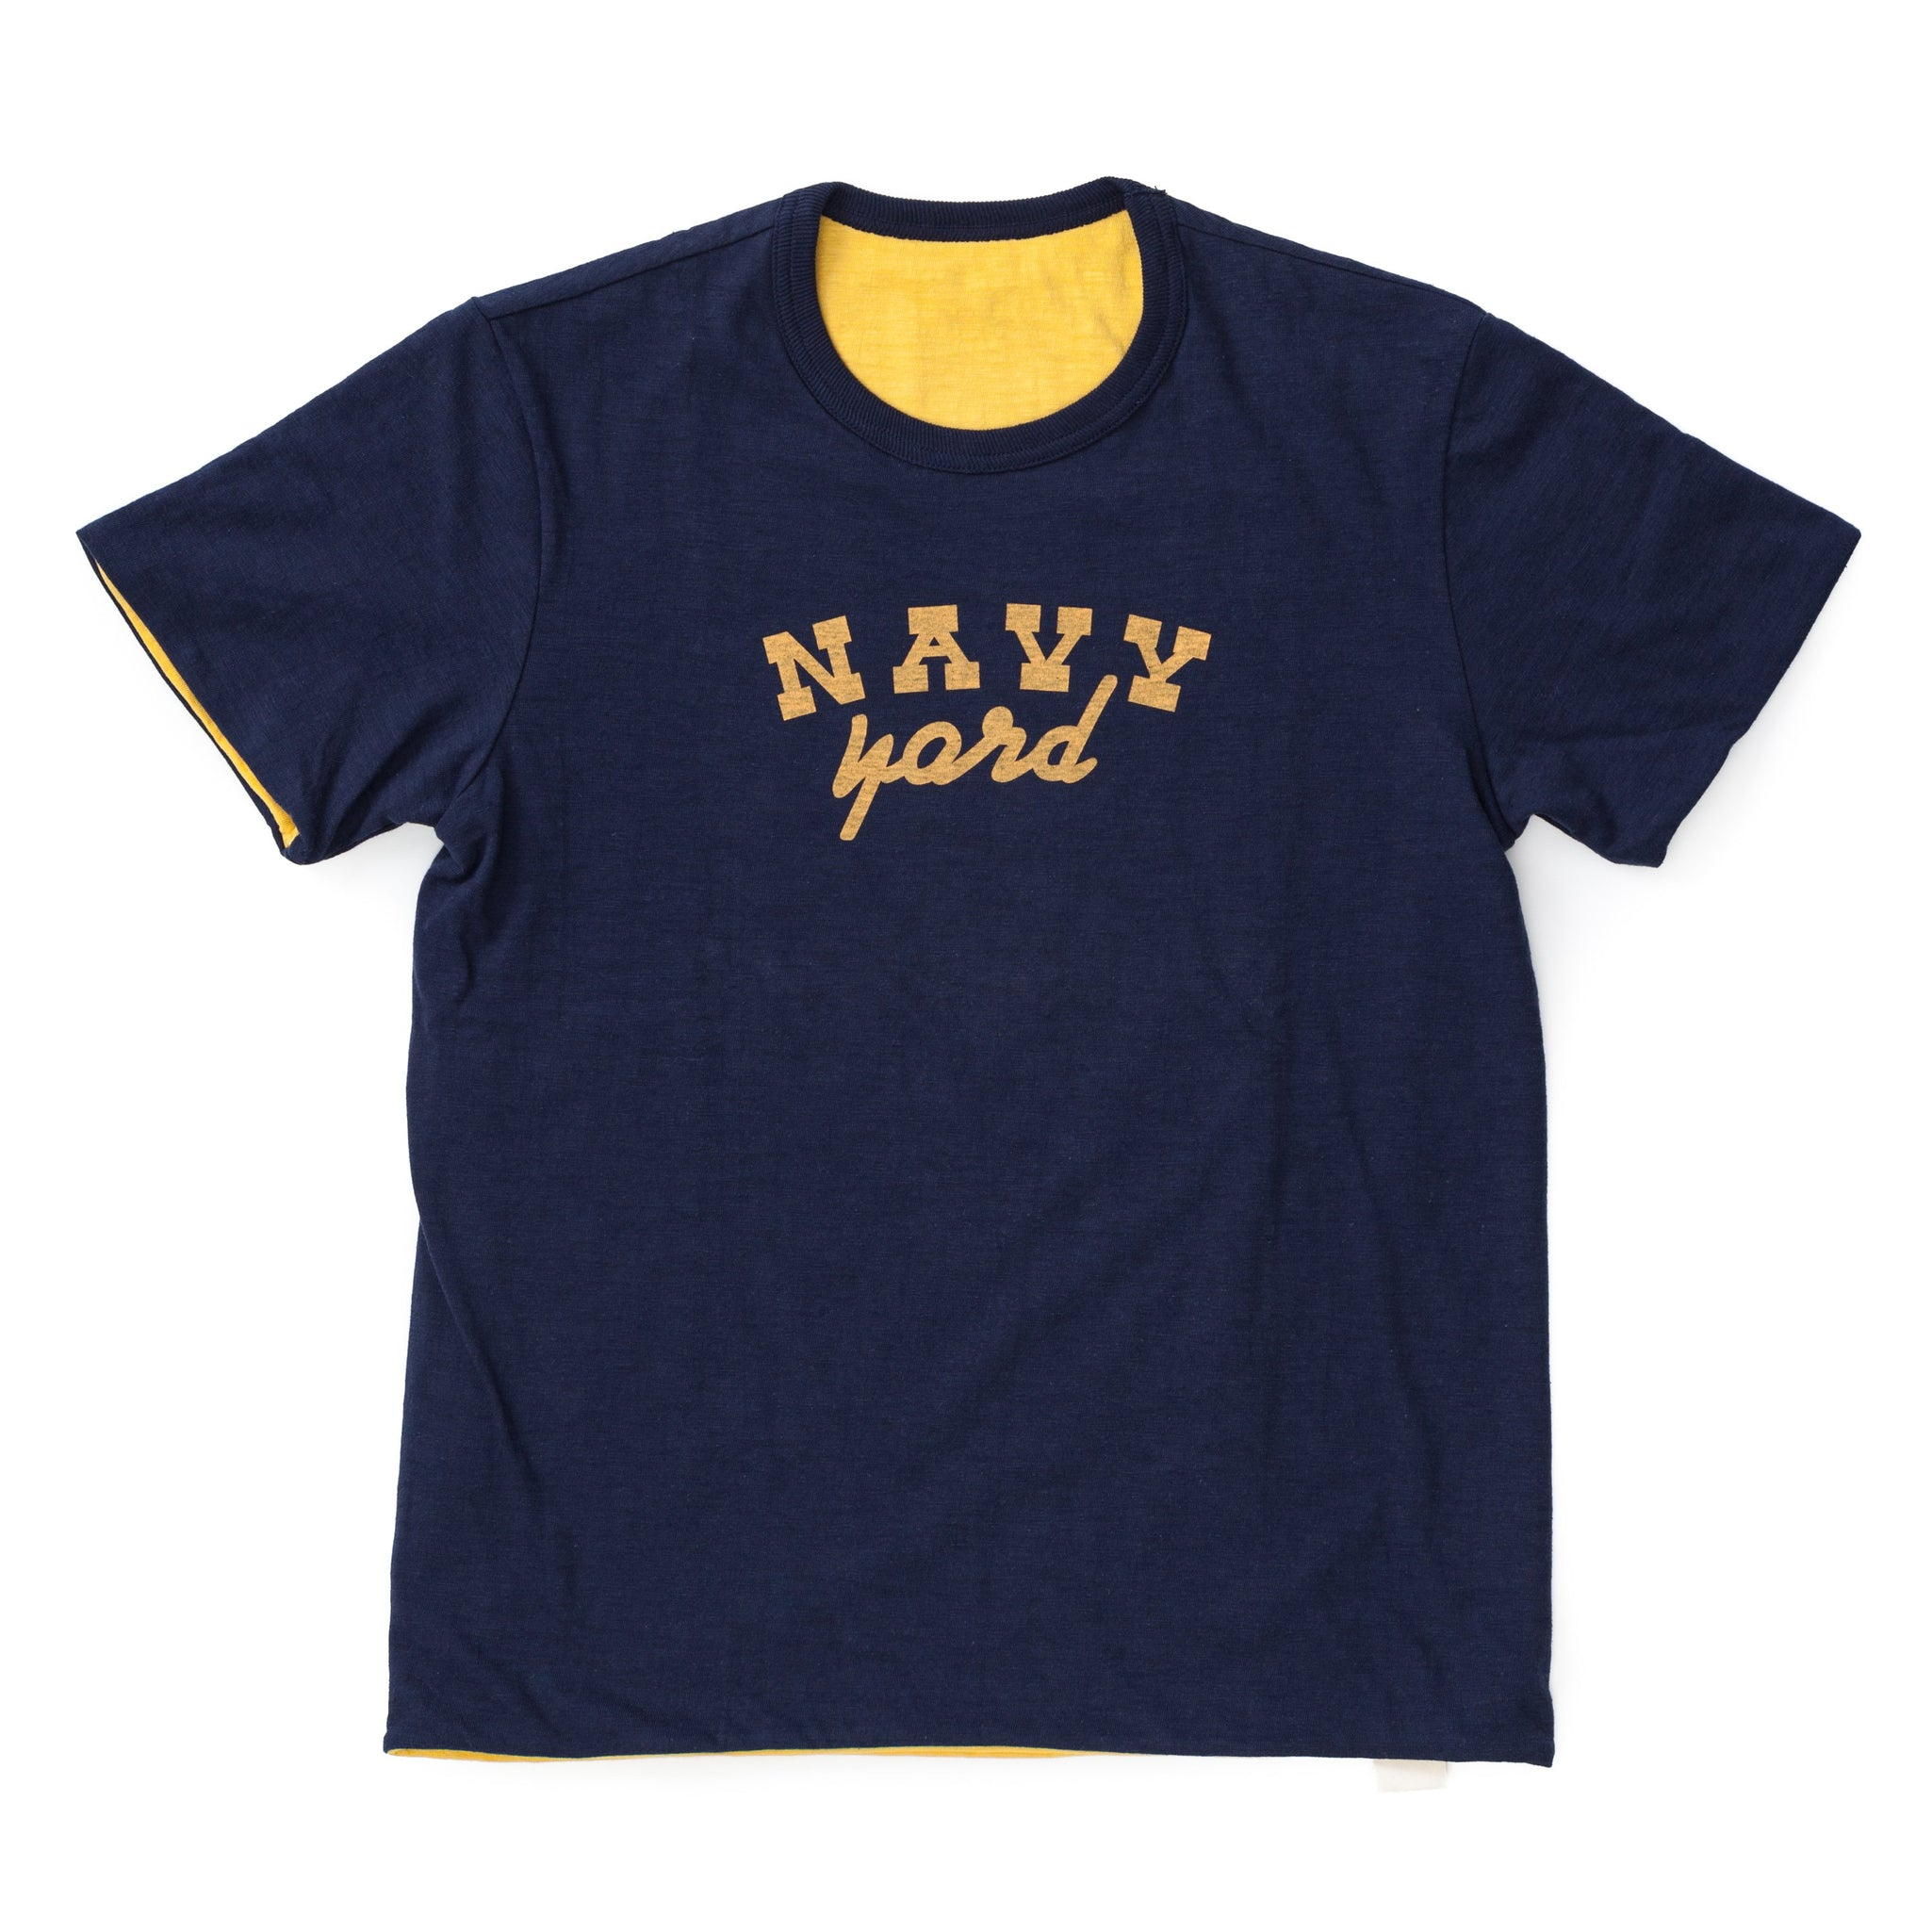 Reversible Tee / Navy Yard